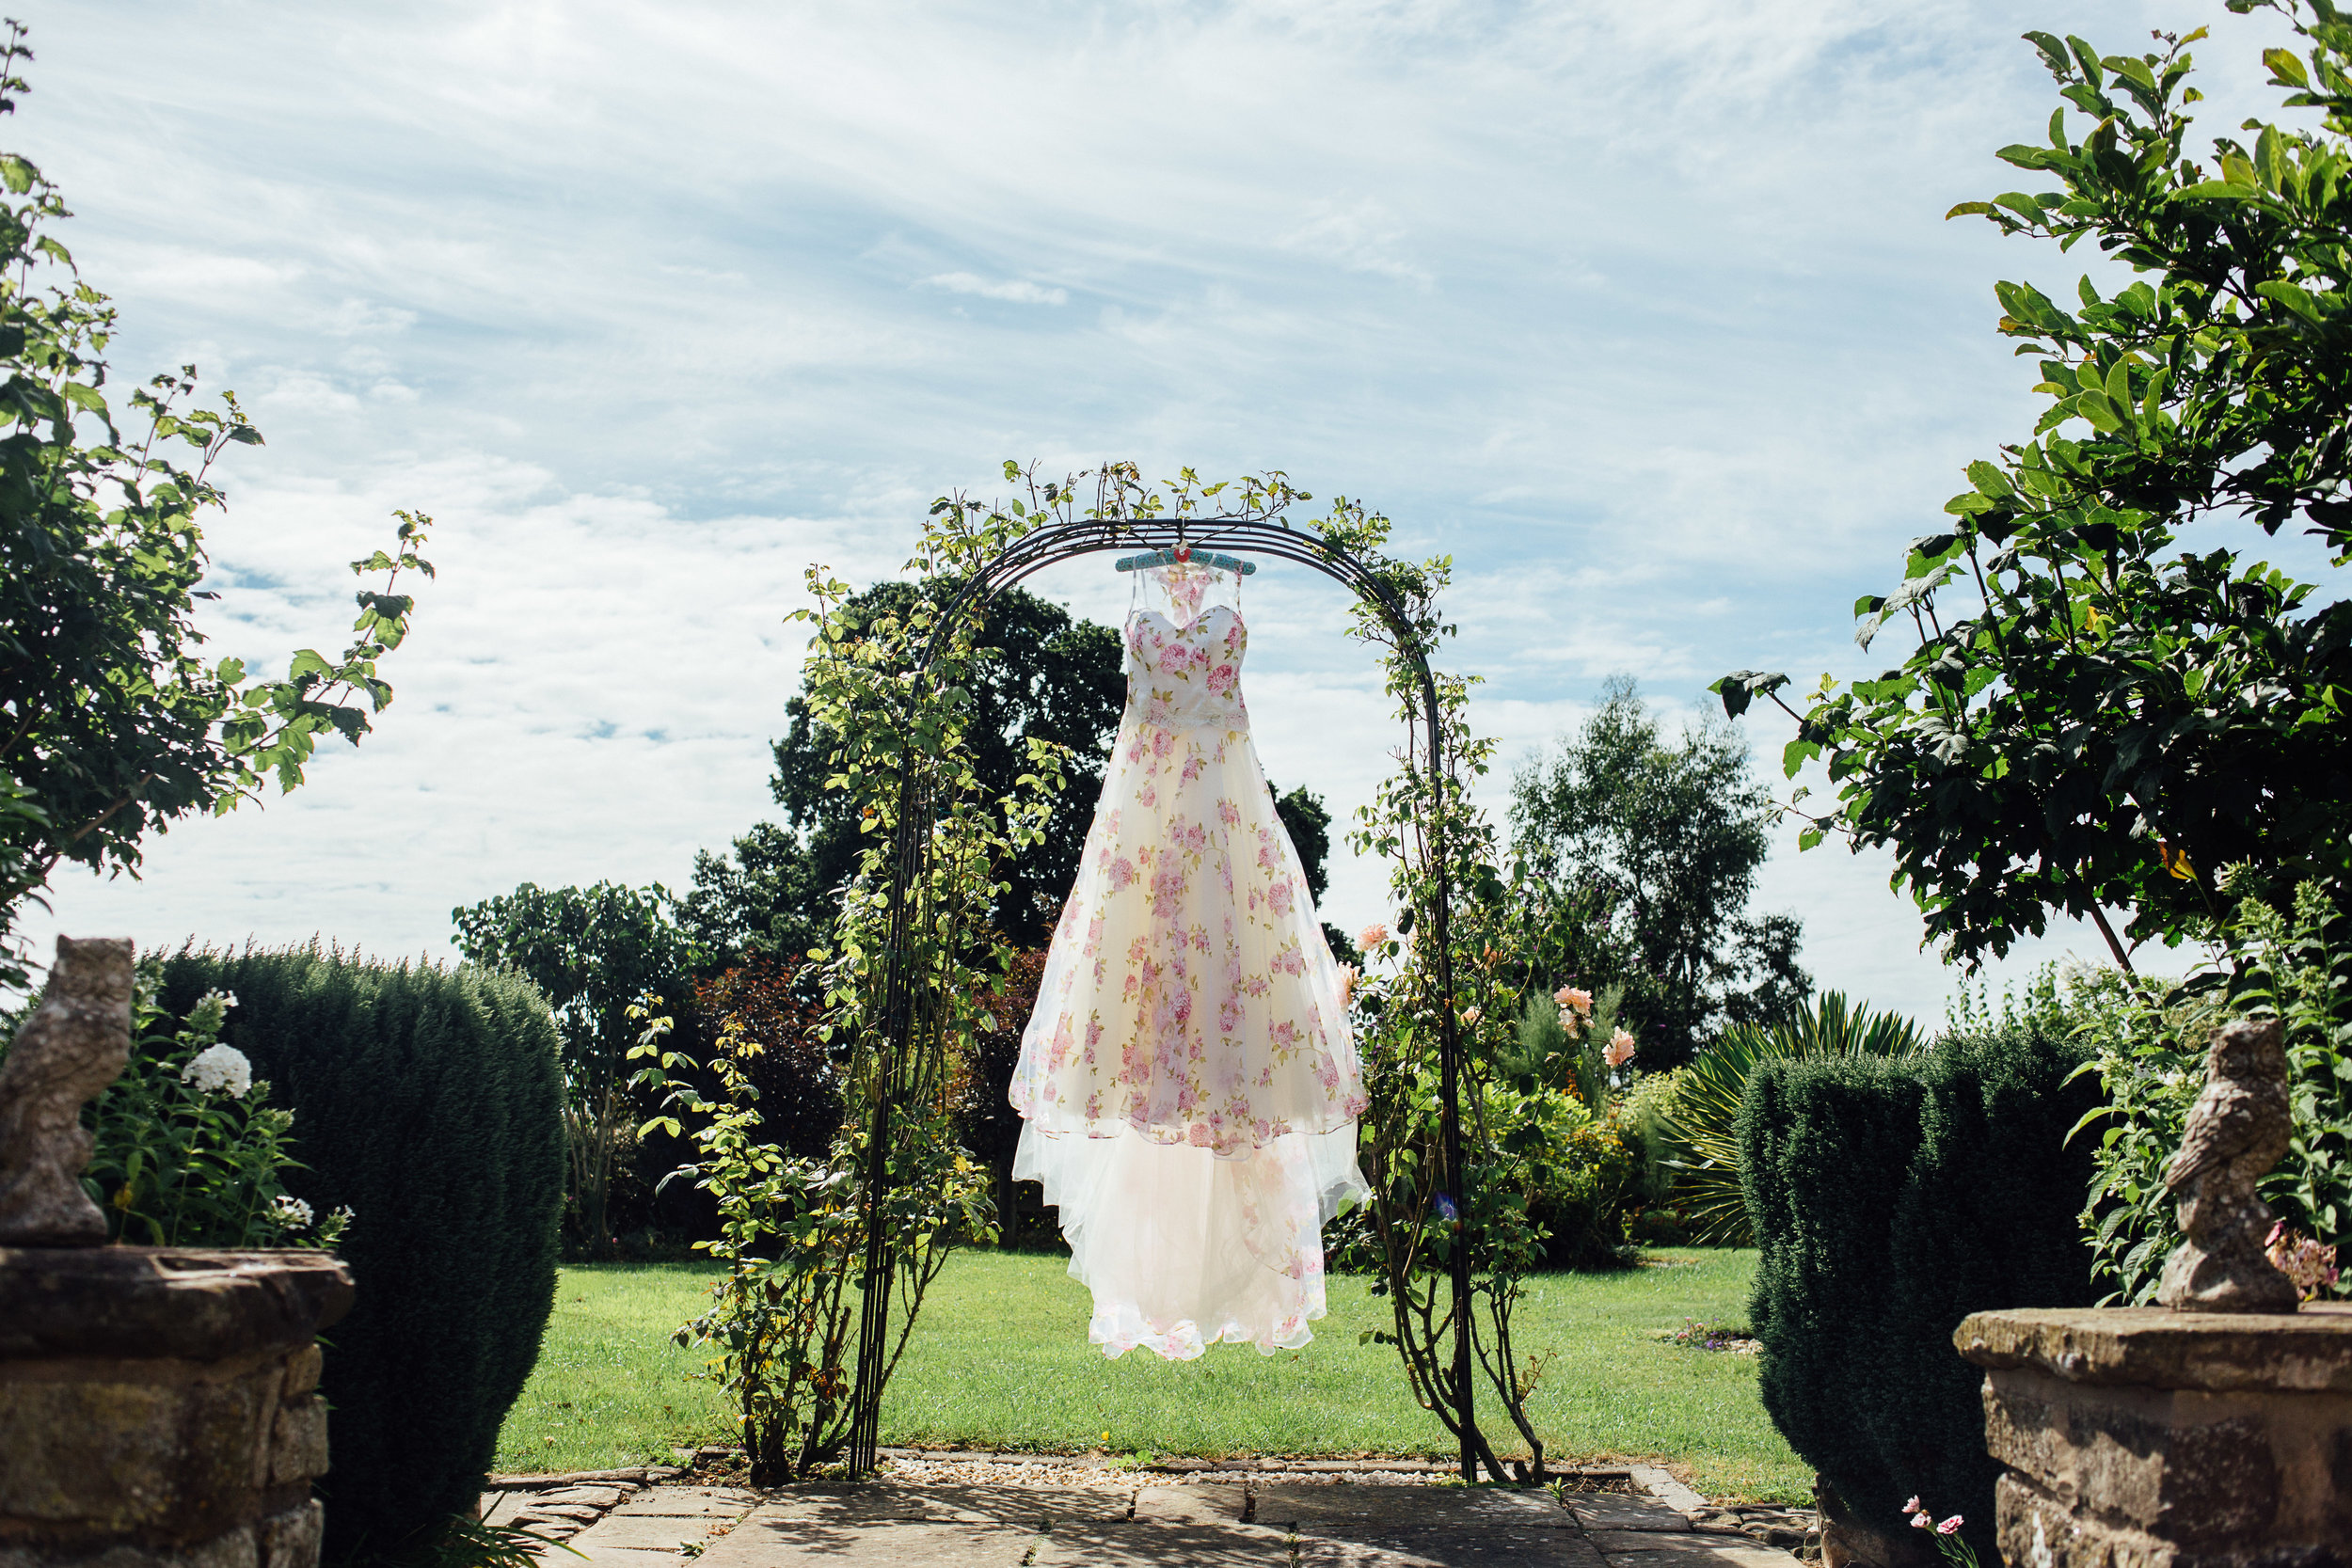 floral wedding dress hung in arch - gloucestershire wedding photographer